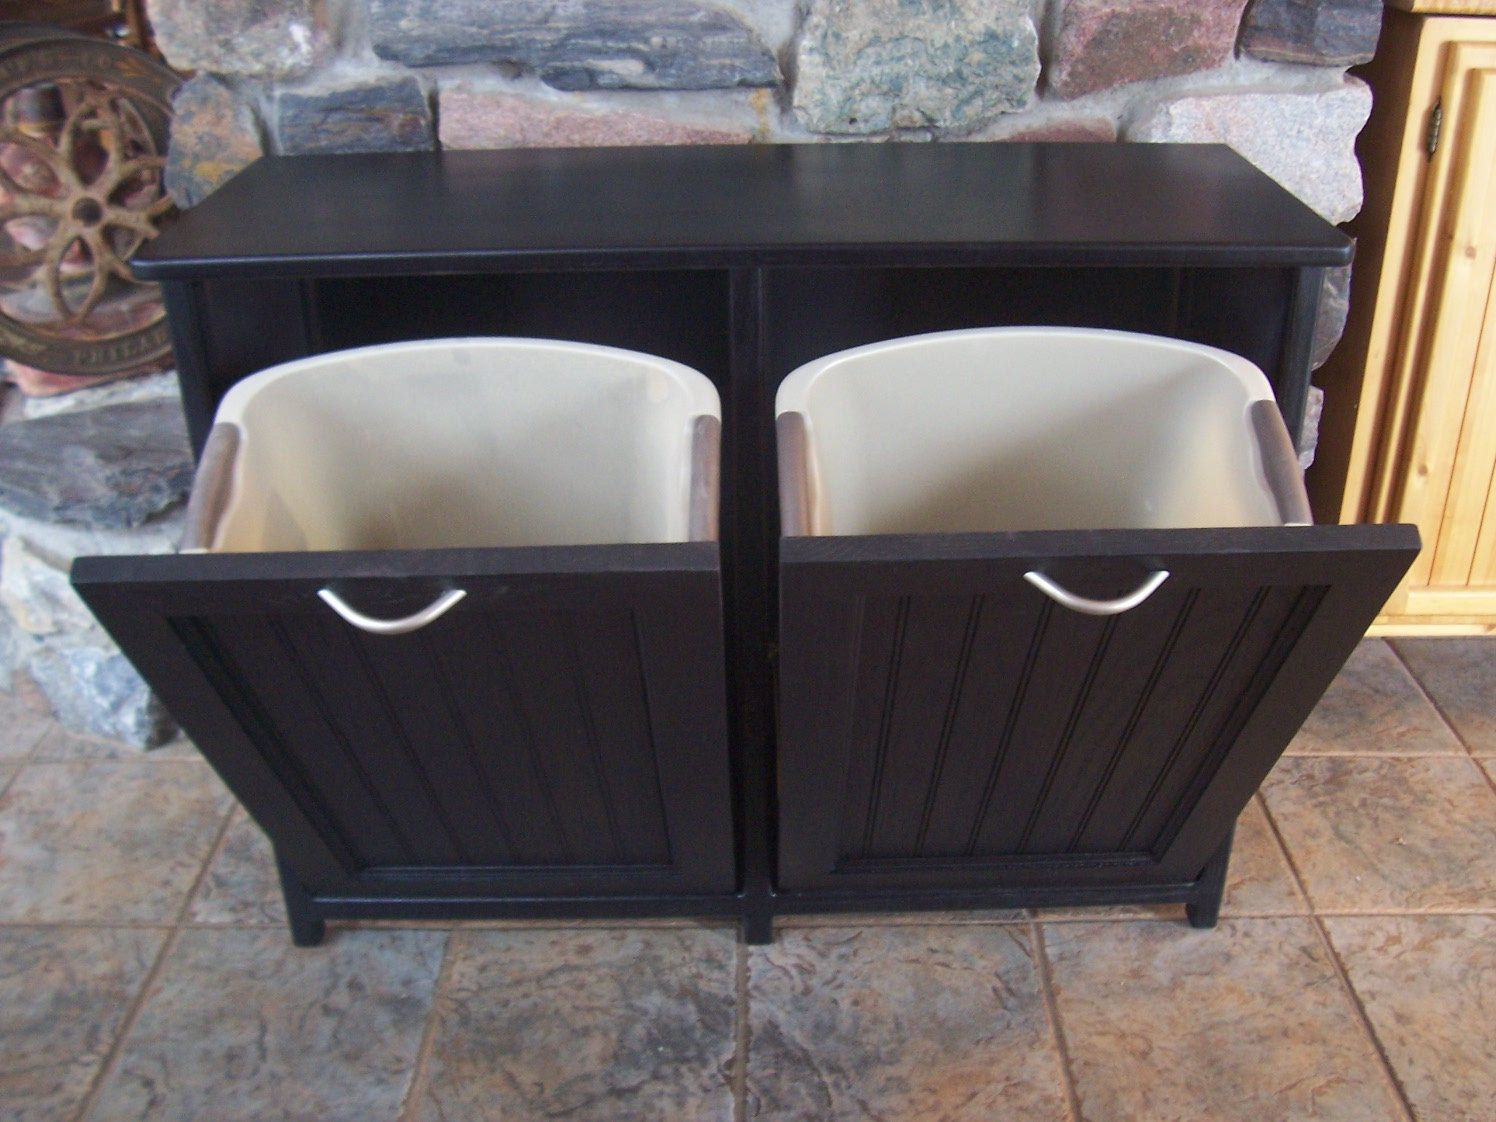 Kitchen Waste Basket Holder: Best 25+ Trash Can Cabinet Ideas On Pinterest